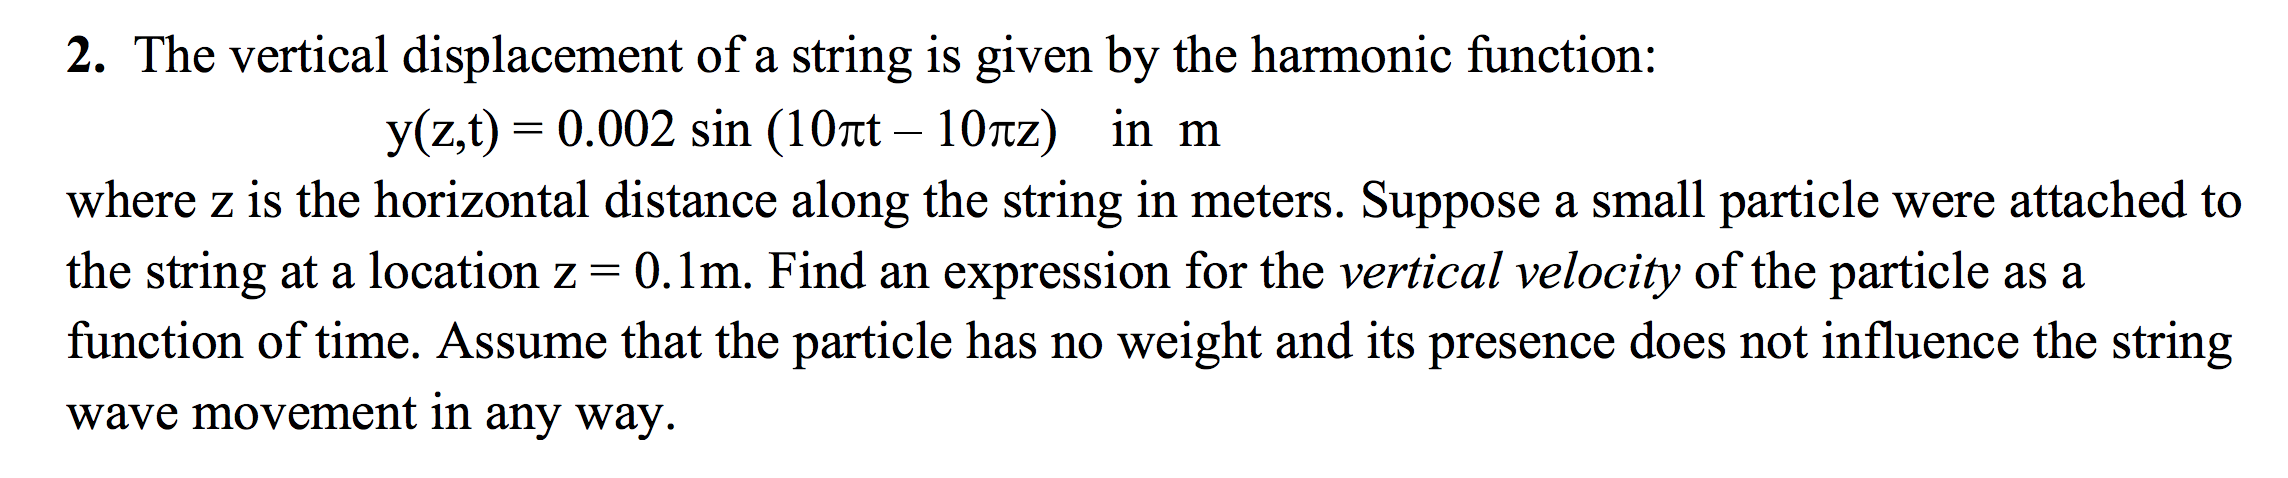 2. The vertical displacement of a string is given by the harmonic function: y(z,t) = 0.002 sin (10rt – 10tz) in m where z is